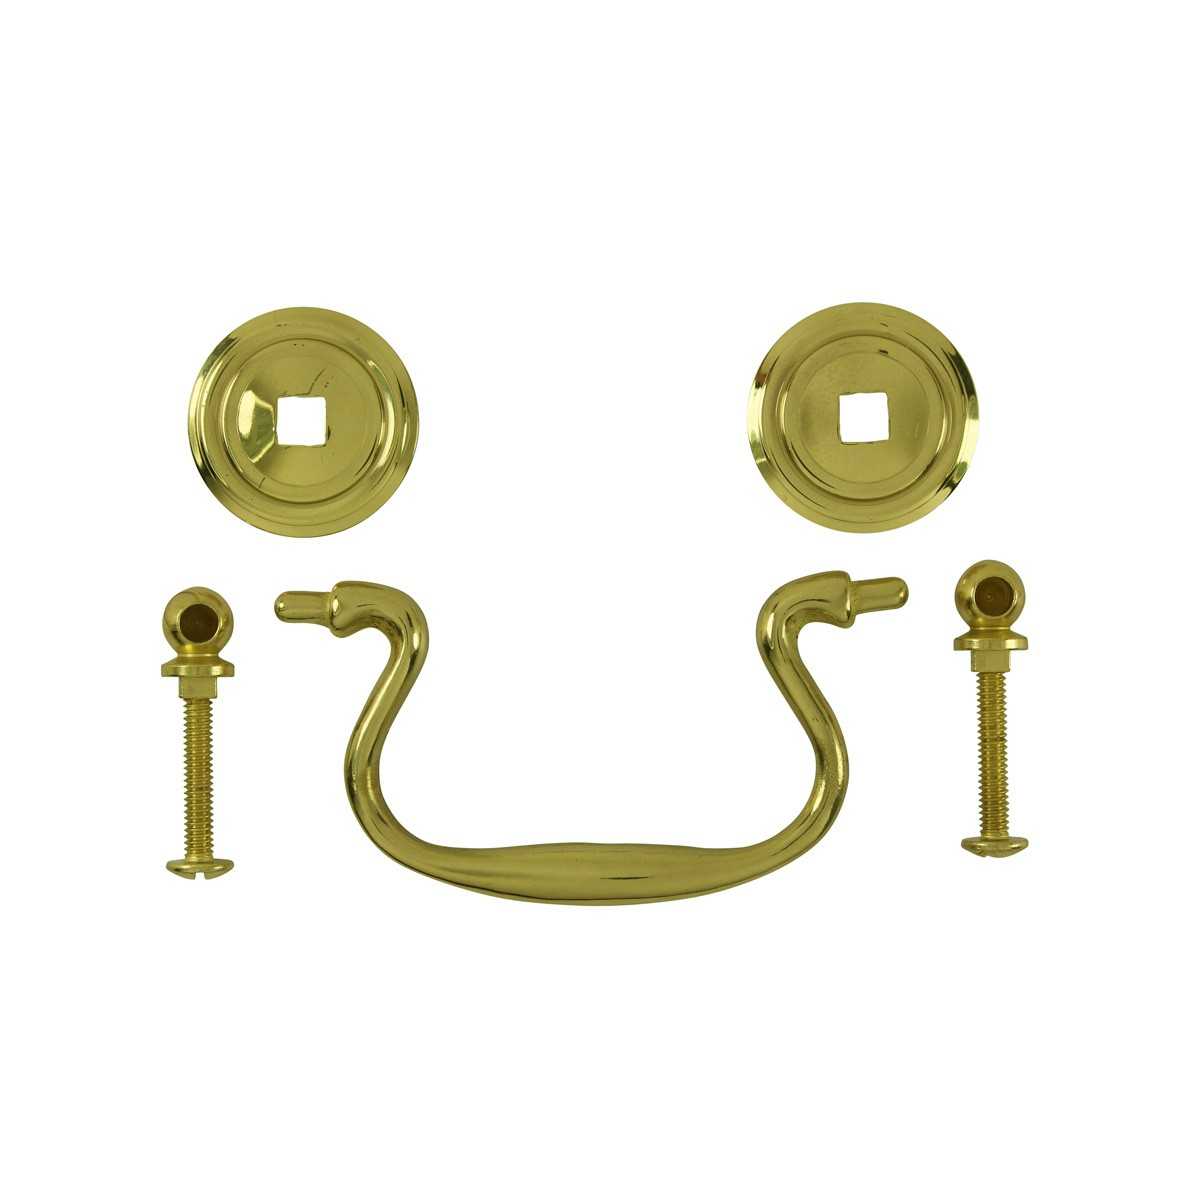 6 Solid Brass Bail Pulls Classic Ring Rosettes 3 Furniture Hardware Cabinet Pull Cabinet Hardware